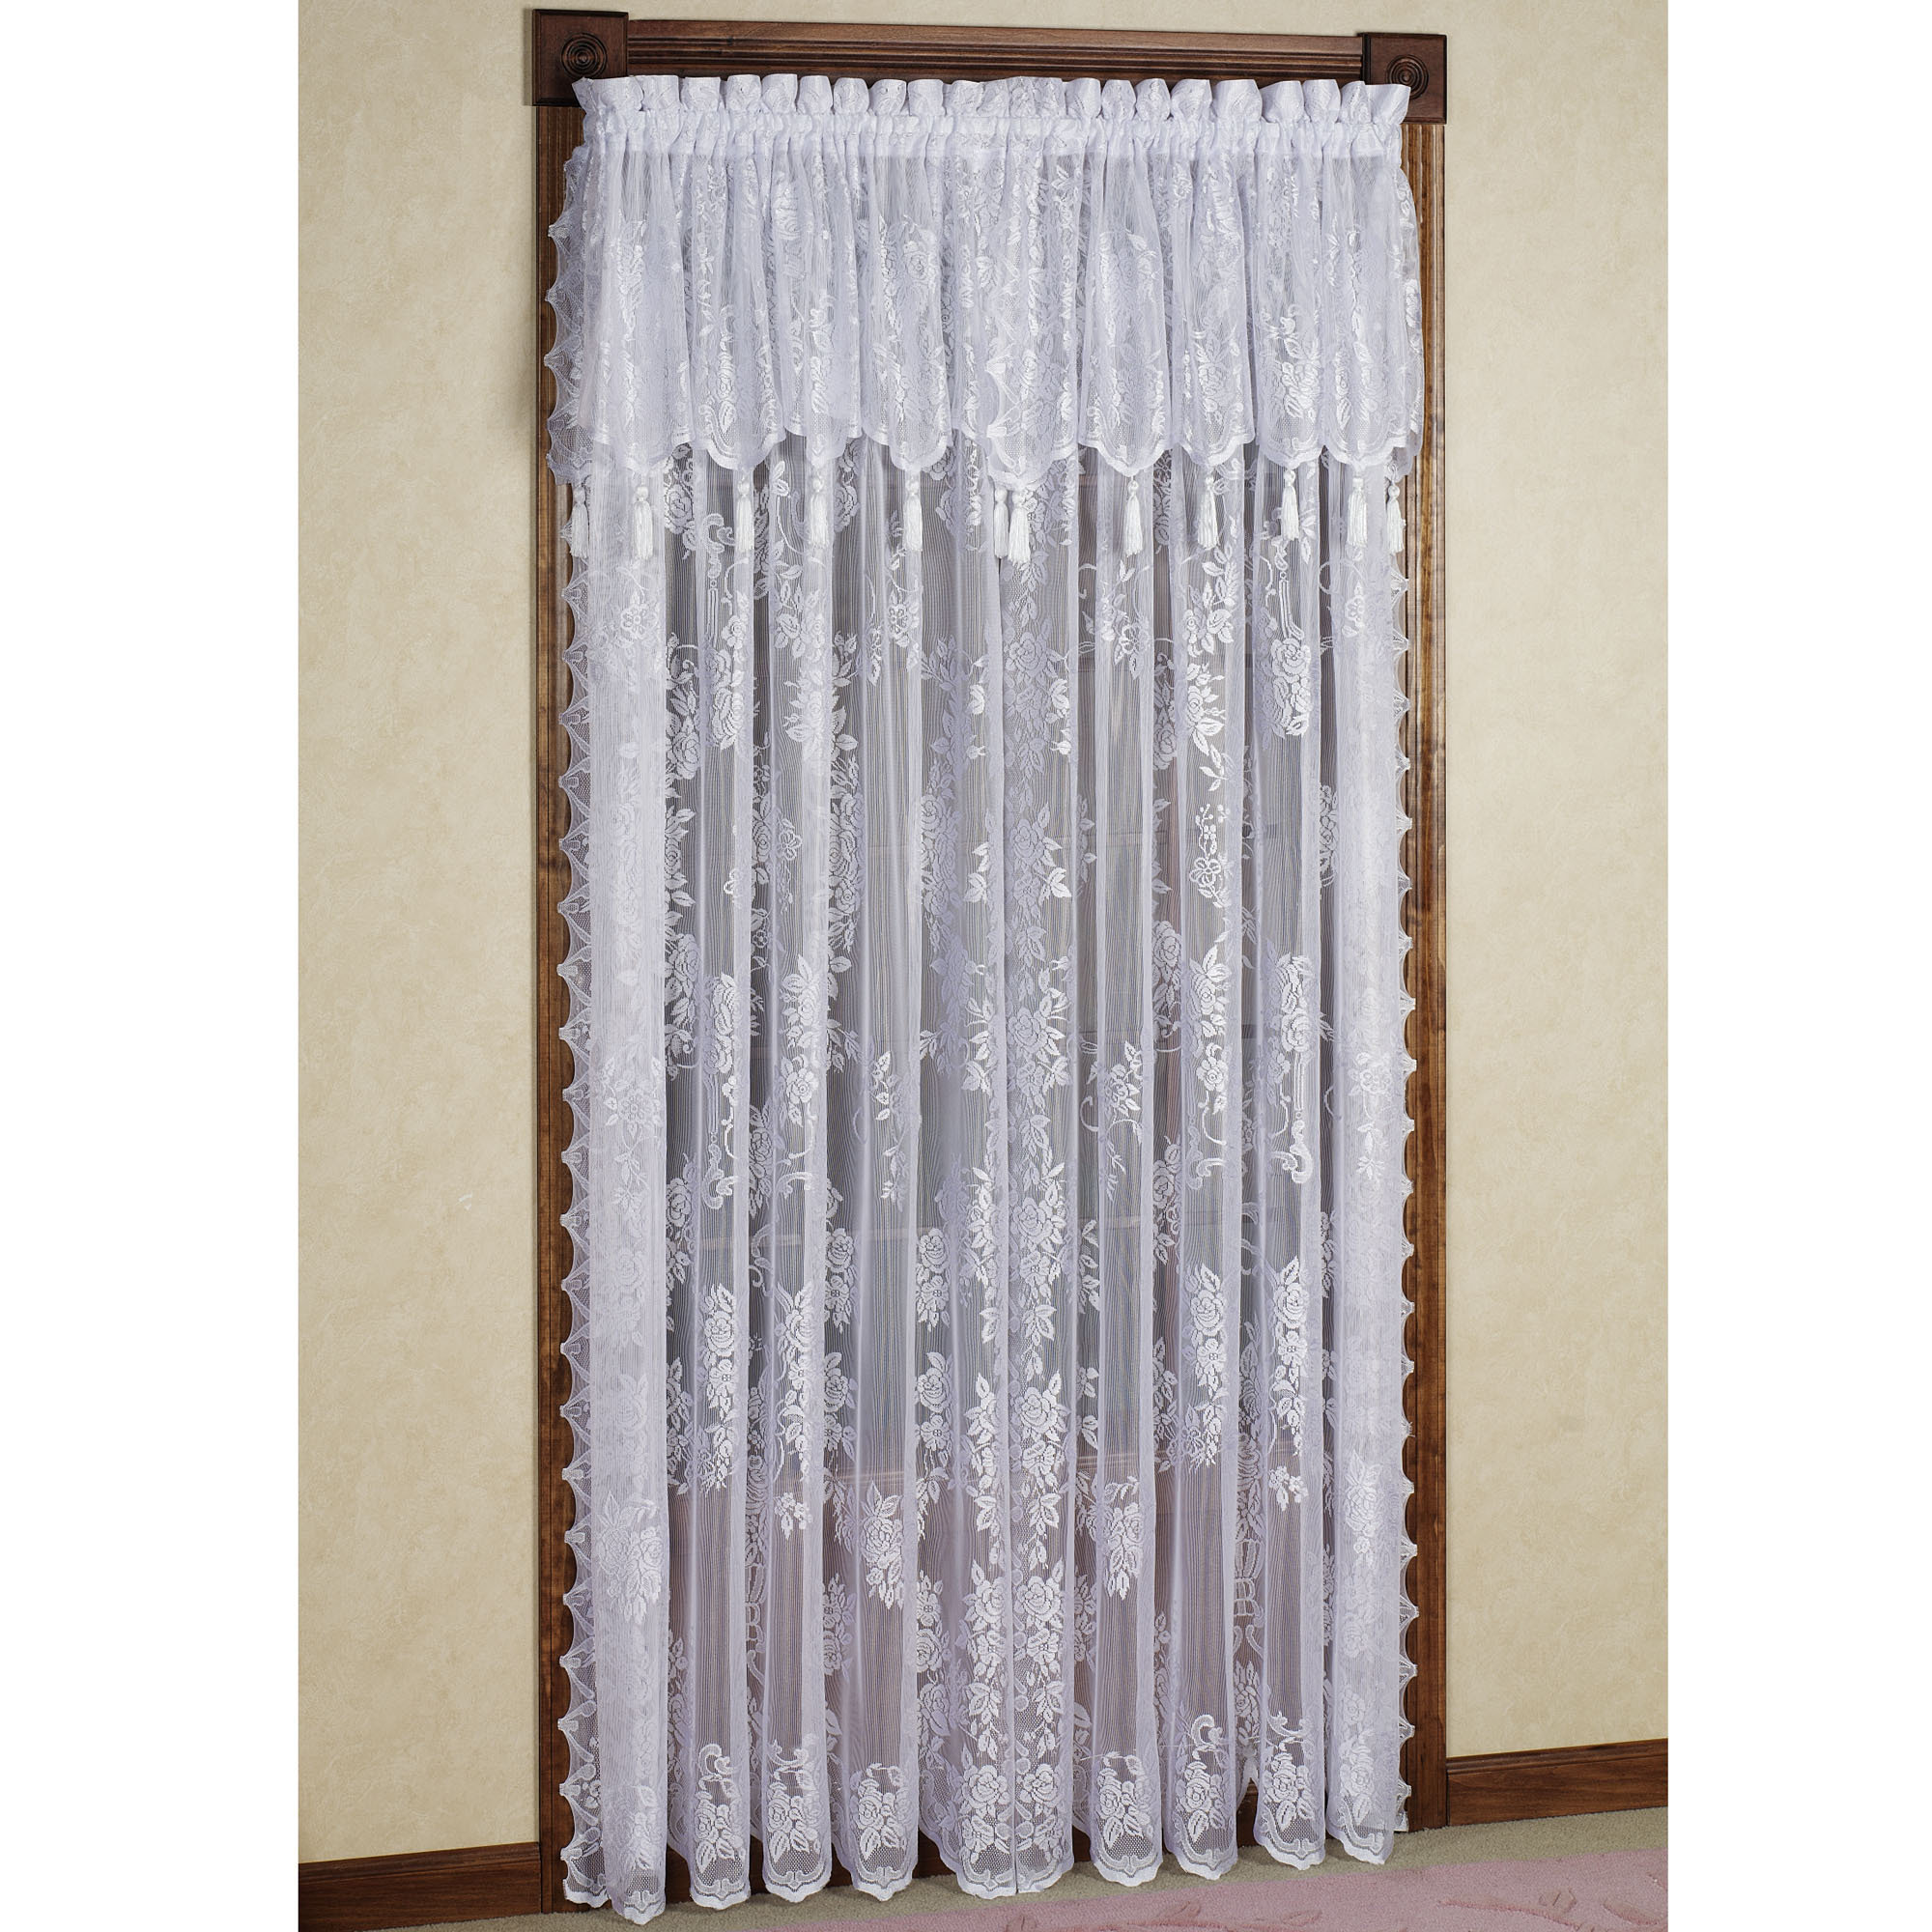 Superieur Others , 7 Top Lace Curtain Panels : Panel With Valance